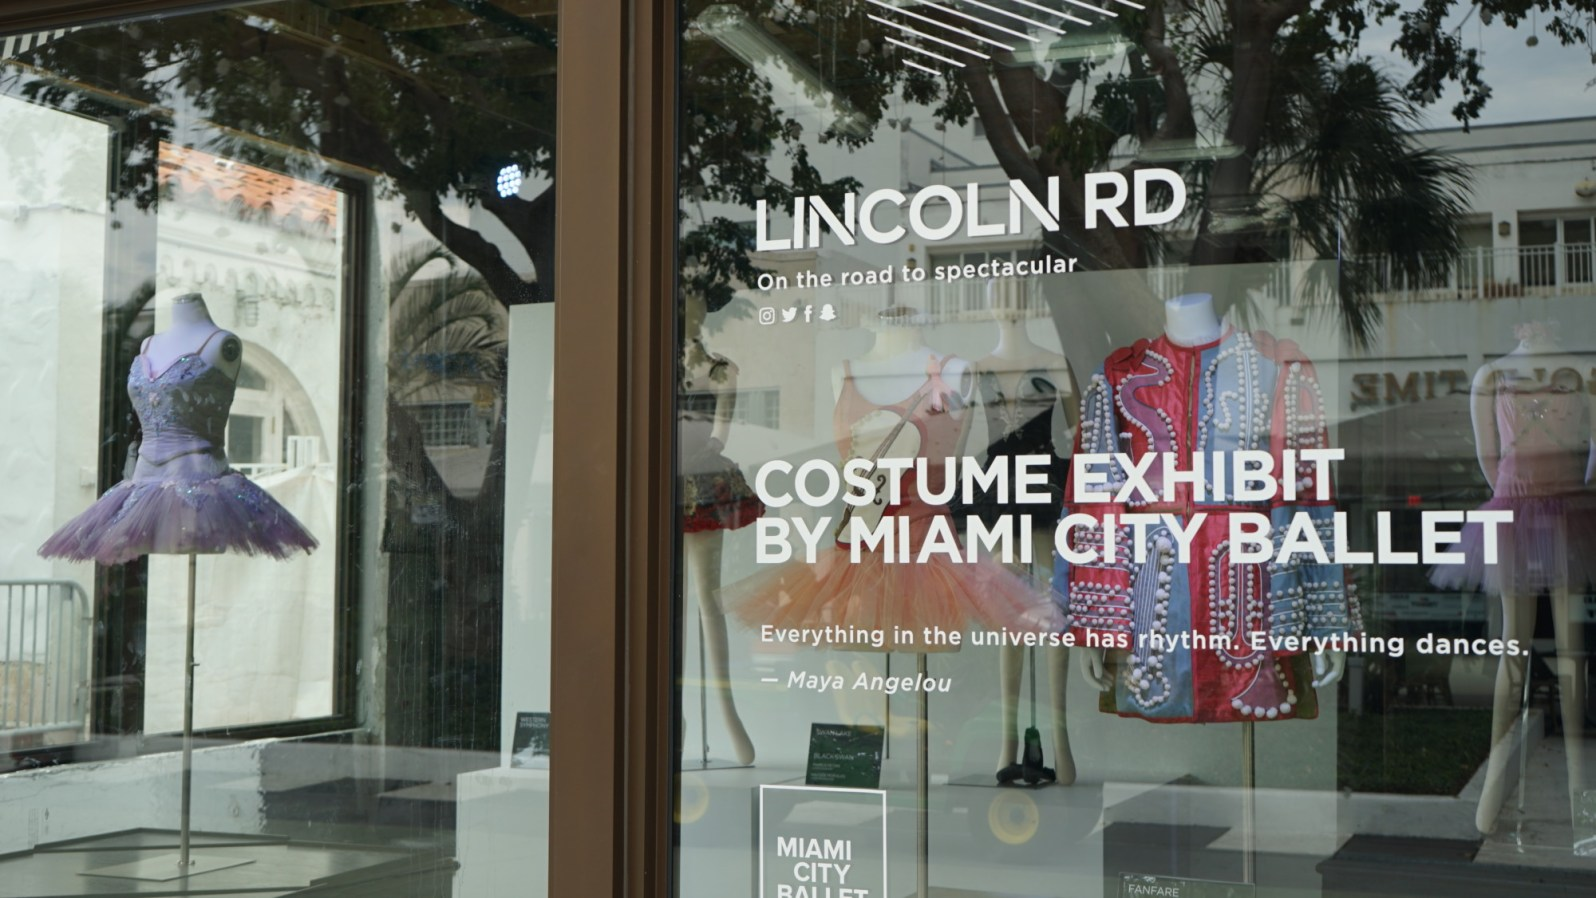 The exhibit on Lincoln Road. (Credit: Roshan Nebhrajani/The New Tropic)